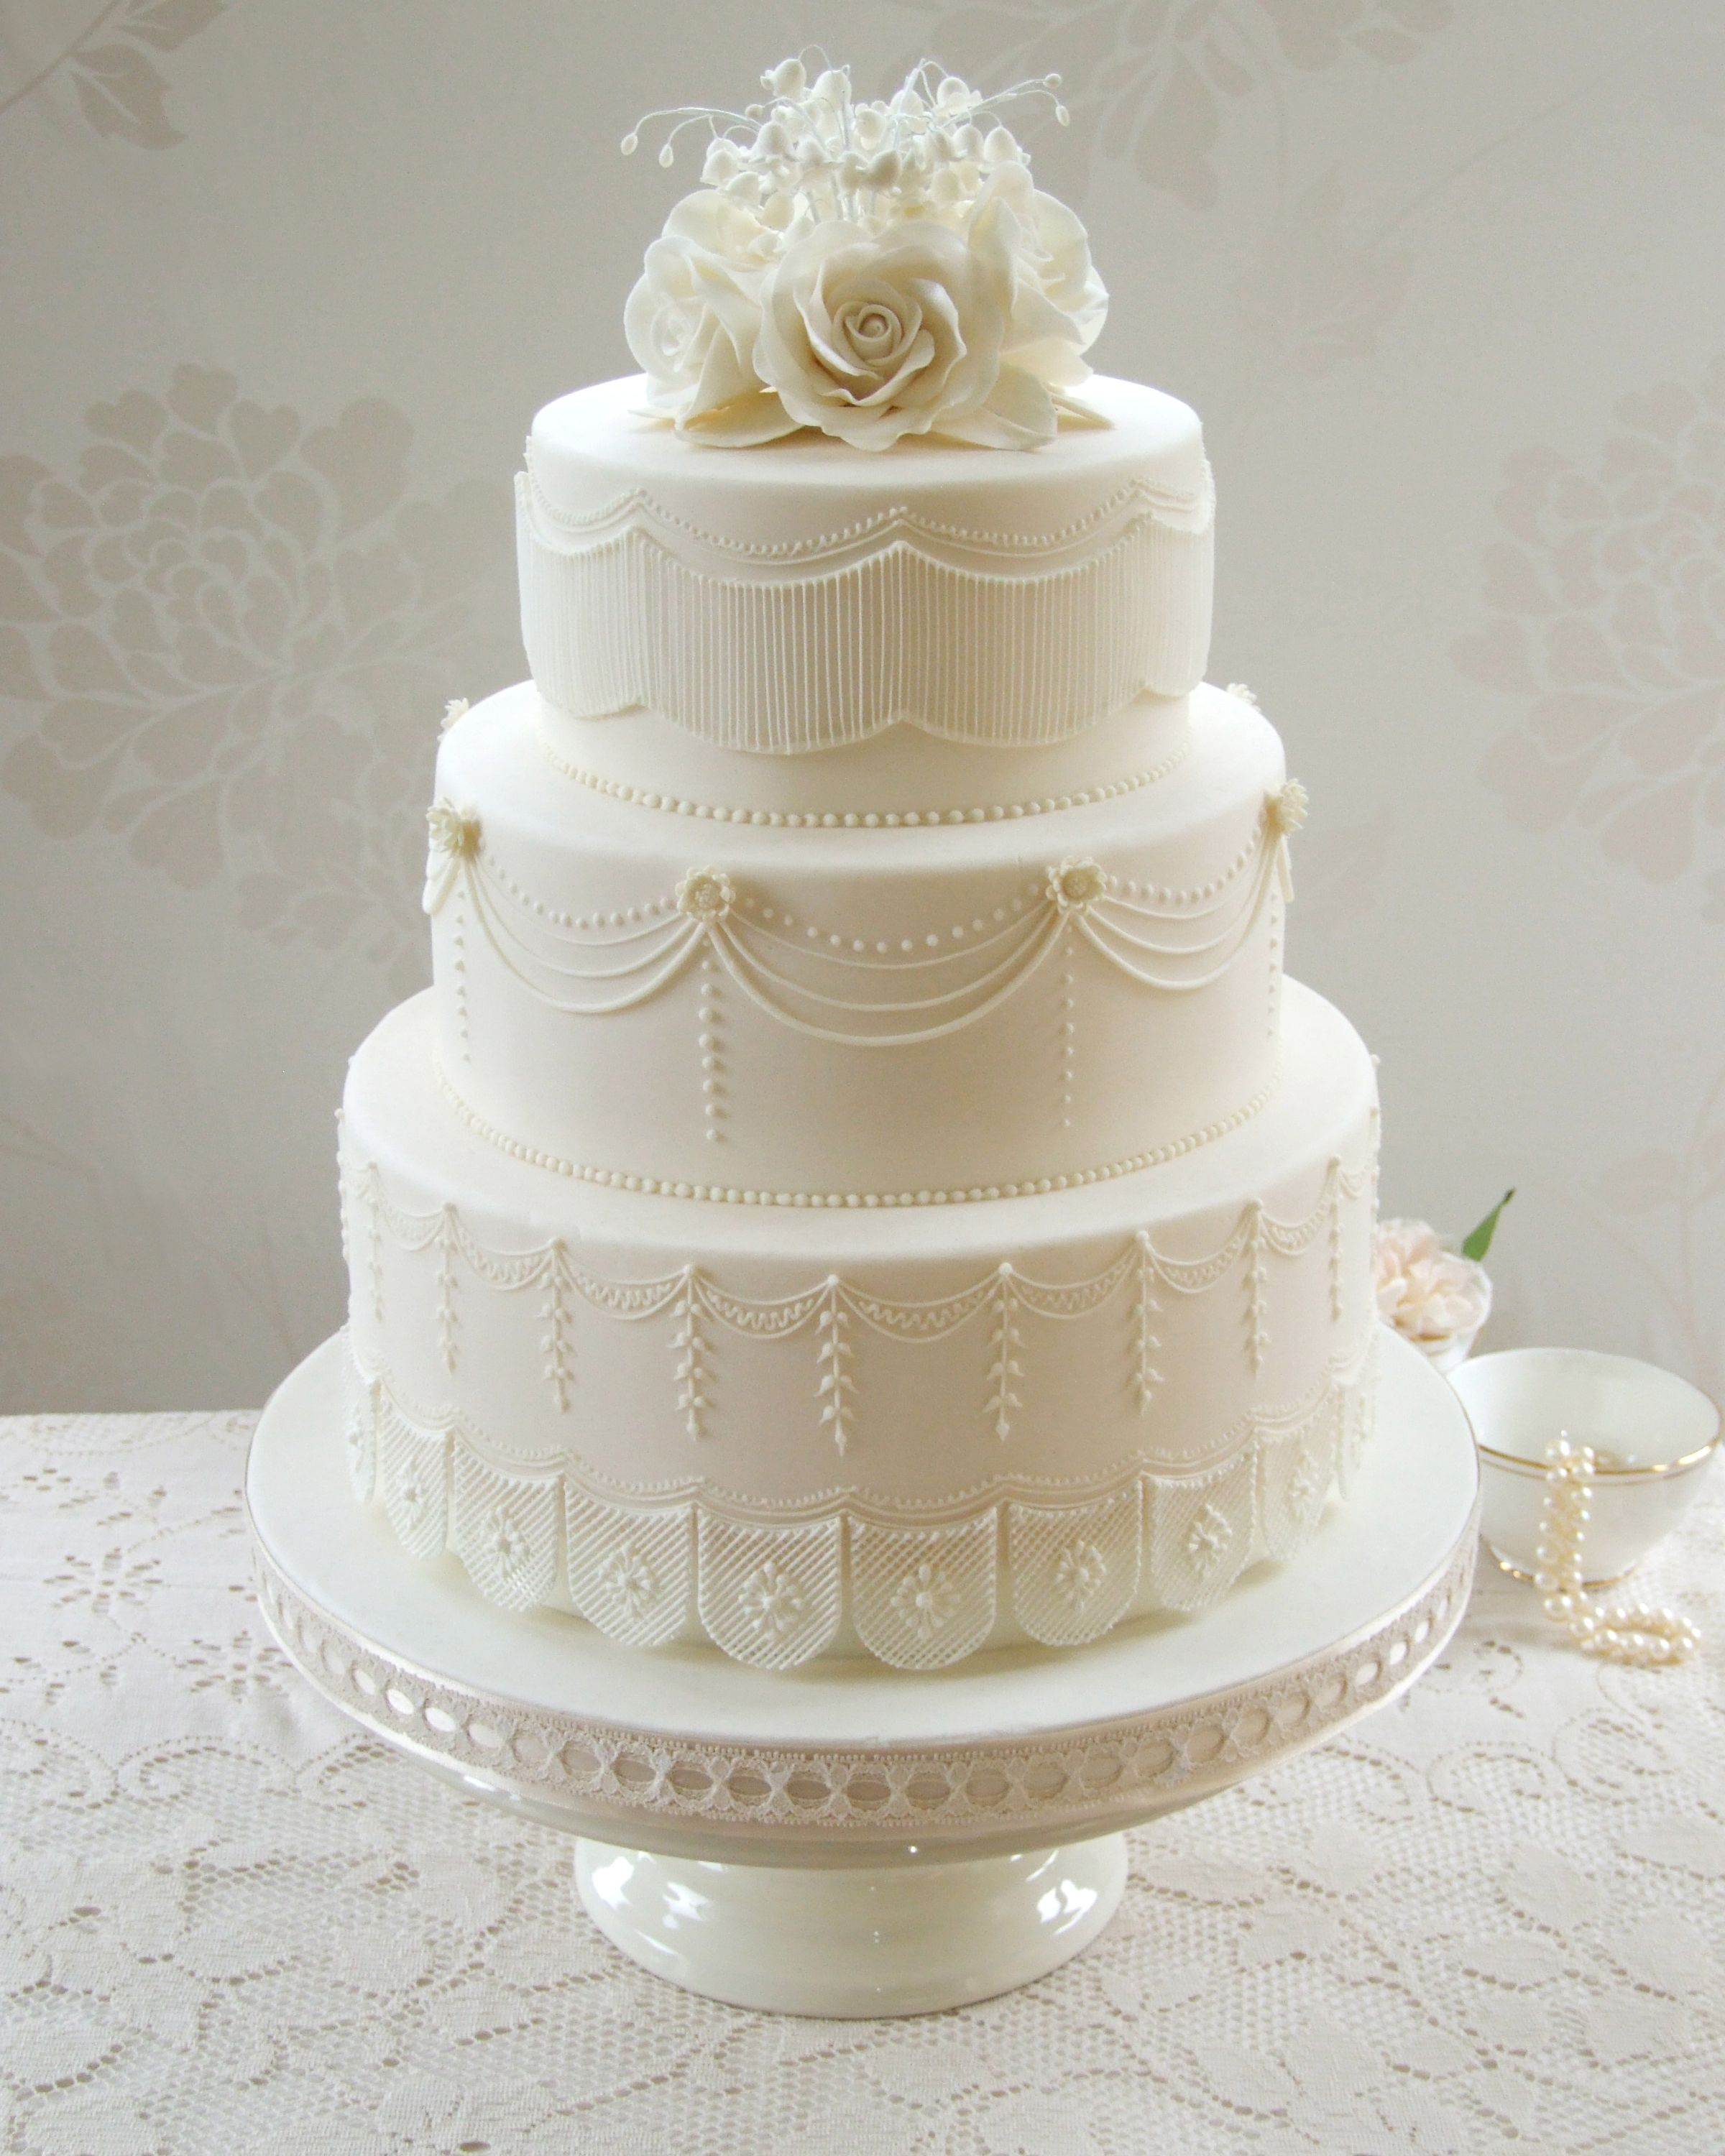 Ivory Wedding Cake Decorated With Piped String Work Swags And Lace